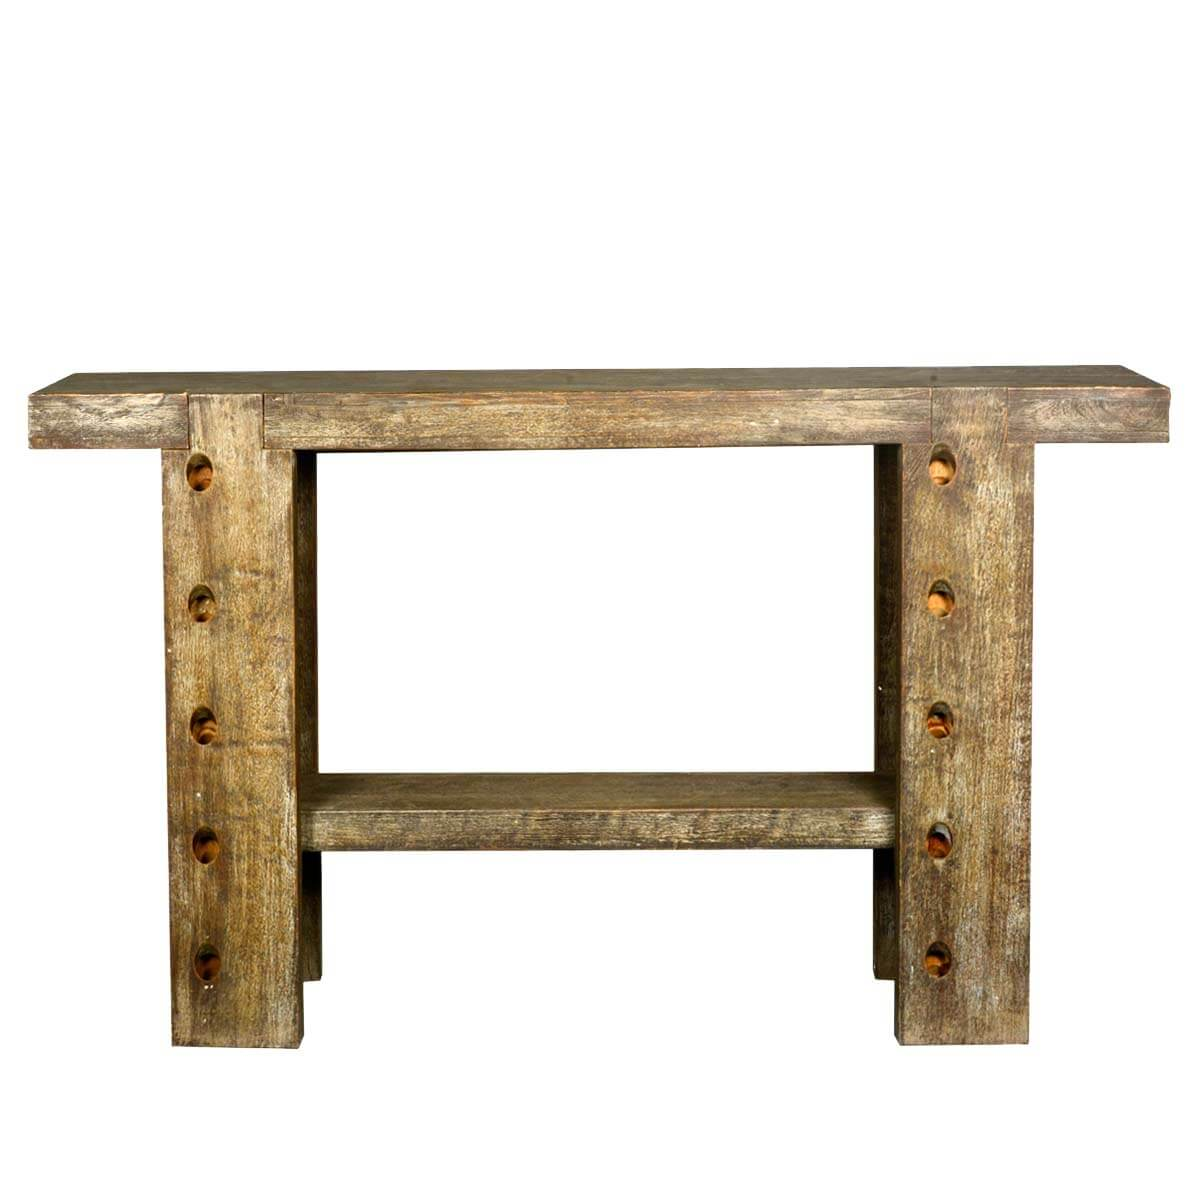 Rustic 10 Holes Reclaimed Wood Sofa Table Hall Console